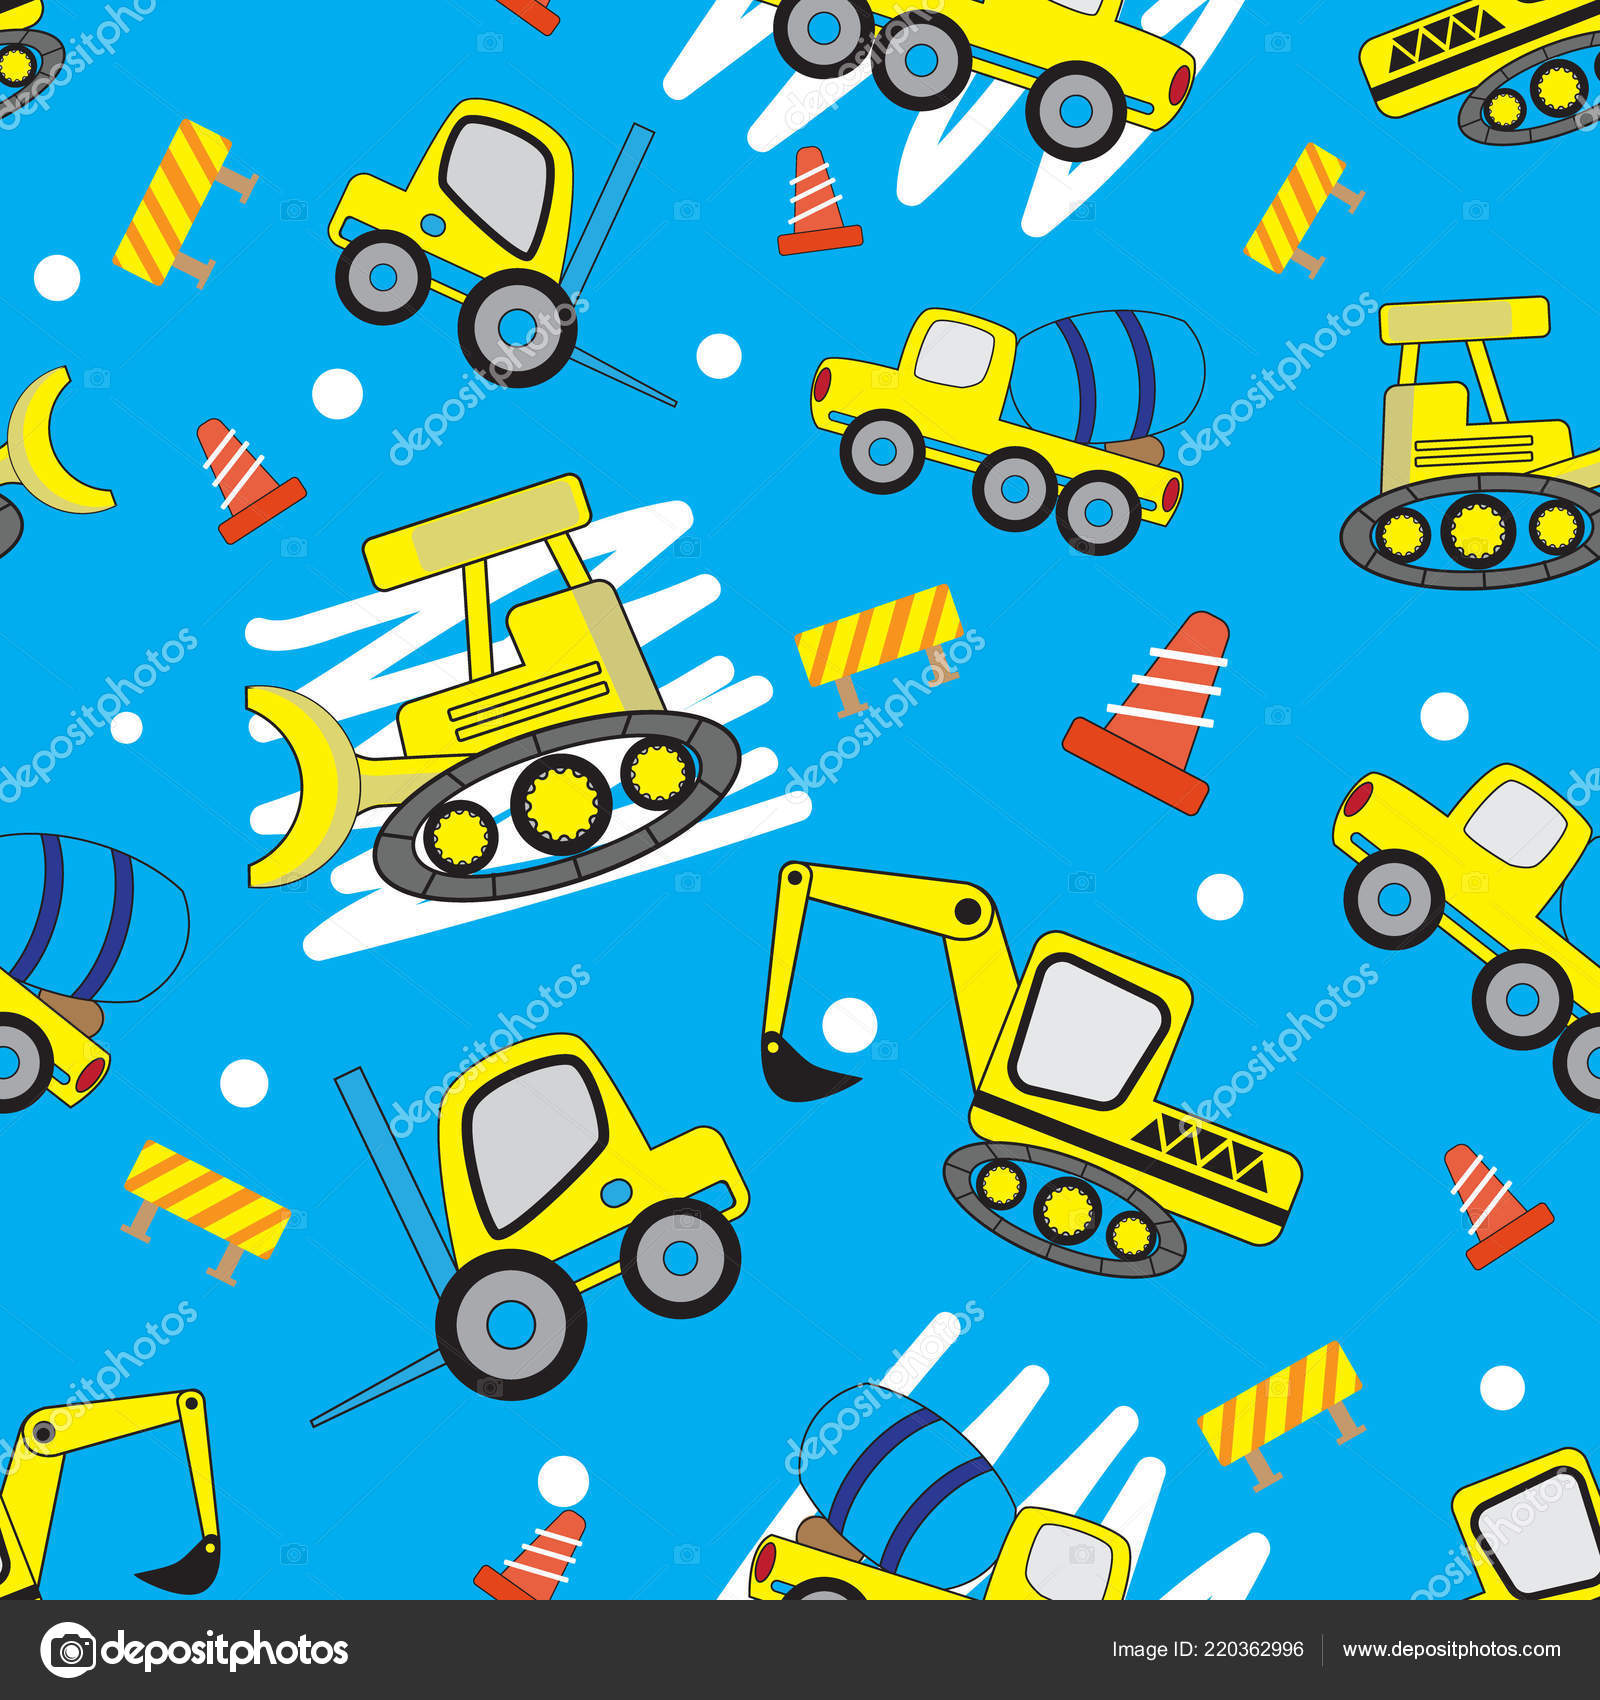 1600x1700 - Wallpaper Cars Cartoon 26